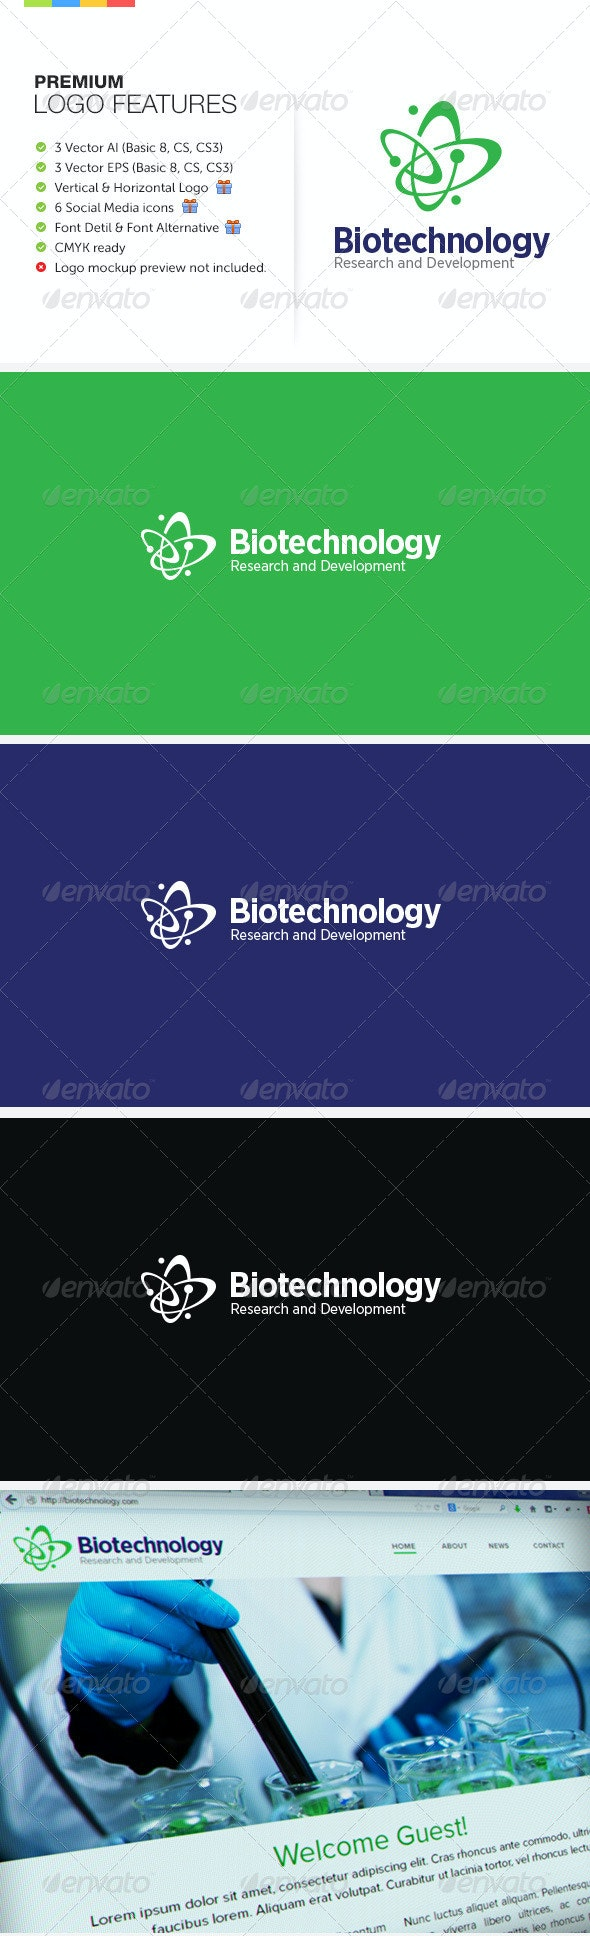 Biotechnology Research & Development - Symbols Logo Templates